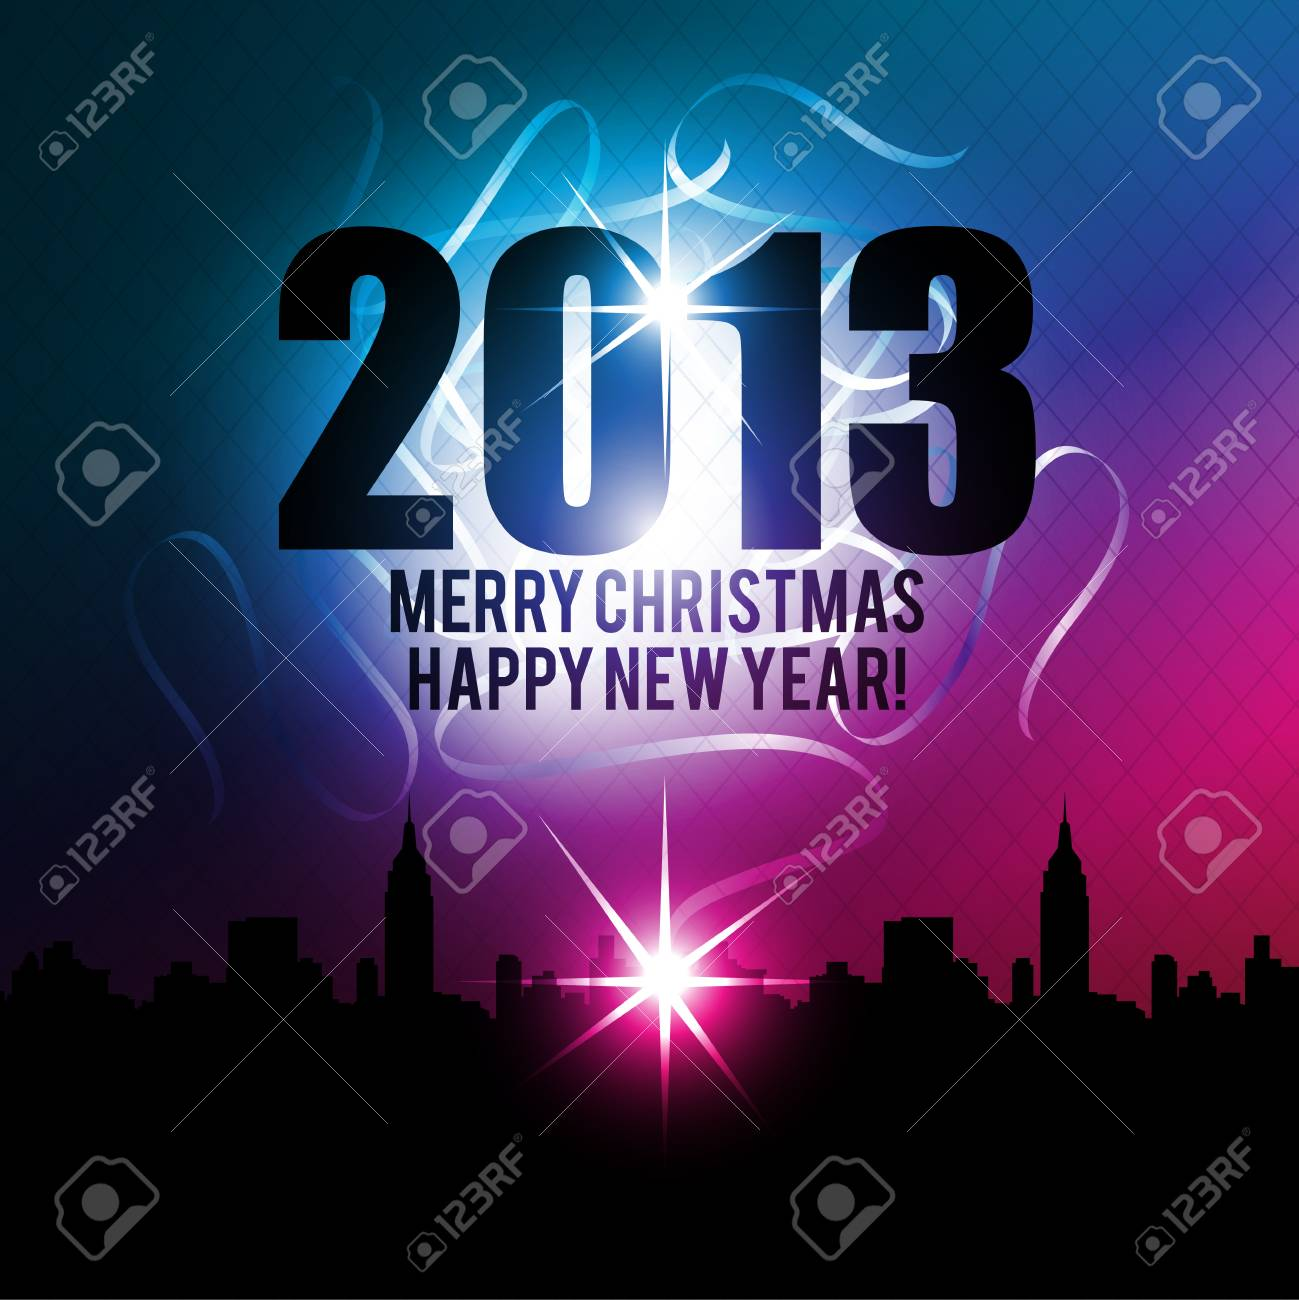 new year christmas 2013 midnight in city Stock Photo - 15841817